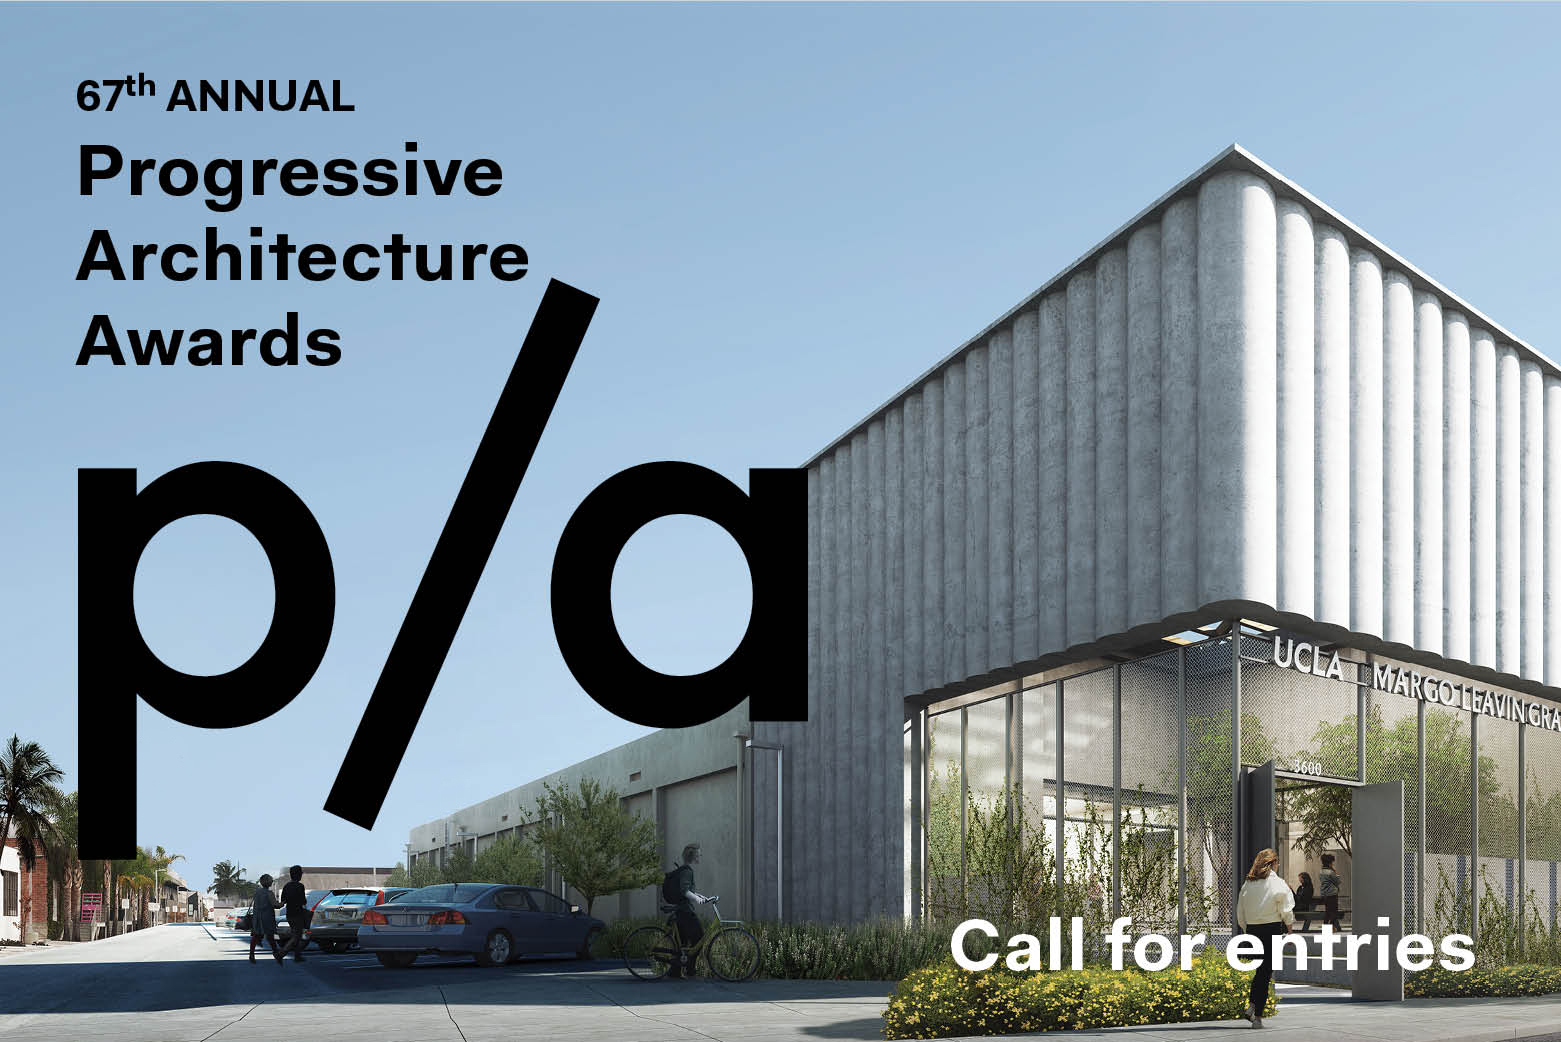 New Progressive Commercial 2020 Submissions for the 2020 Progressive Architecture Awards Are Now